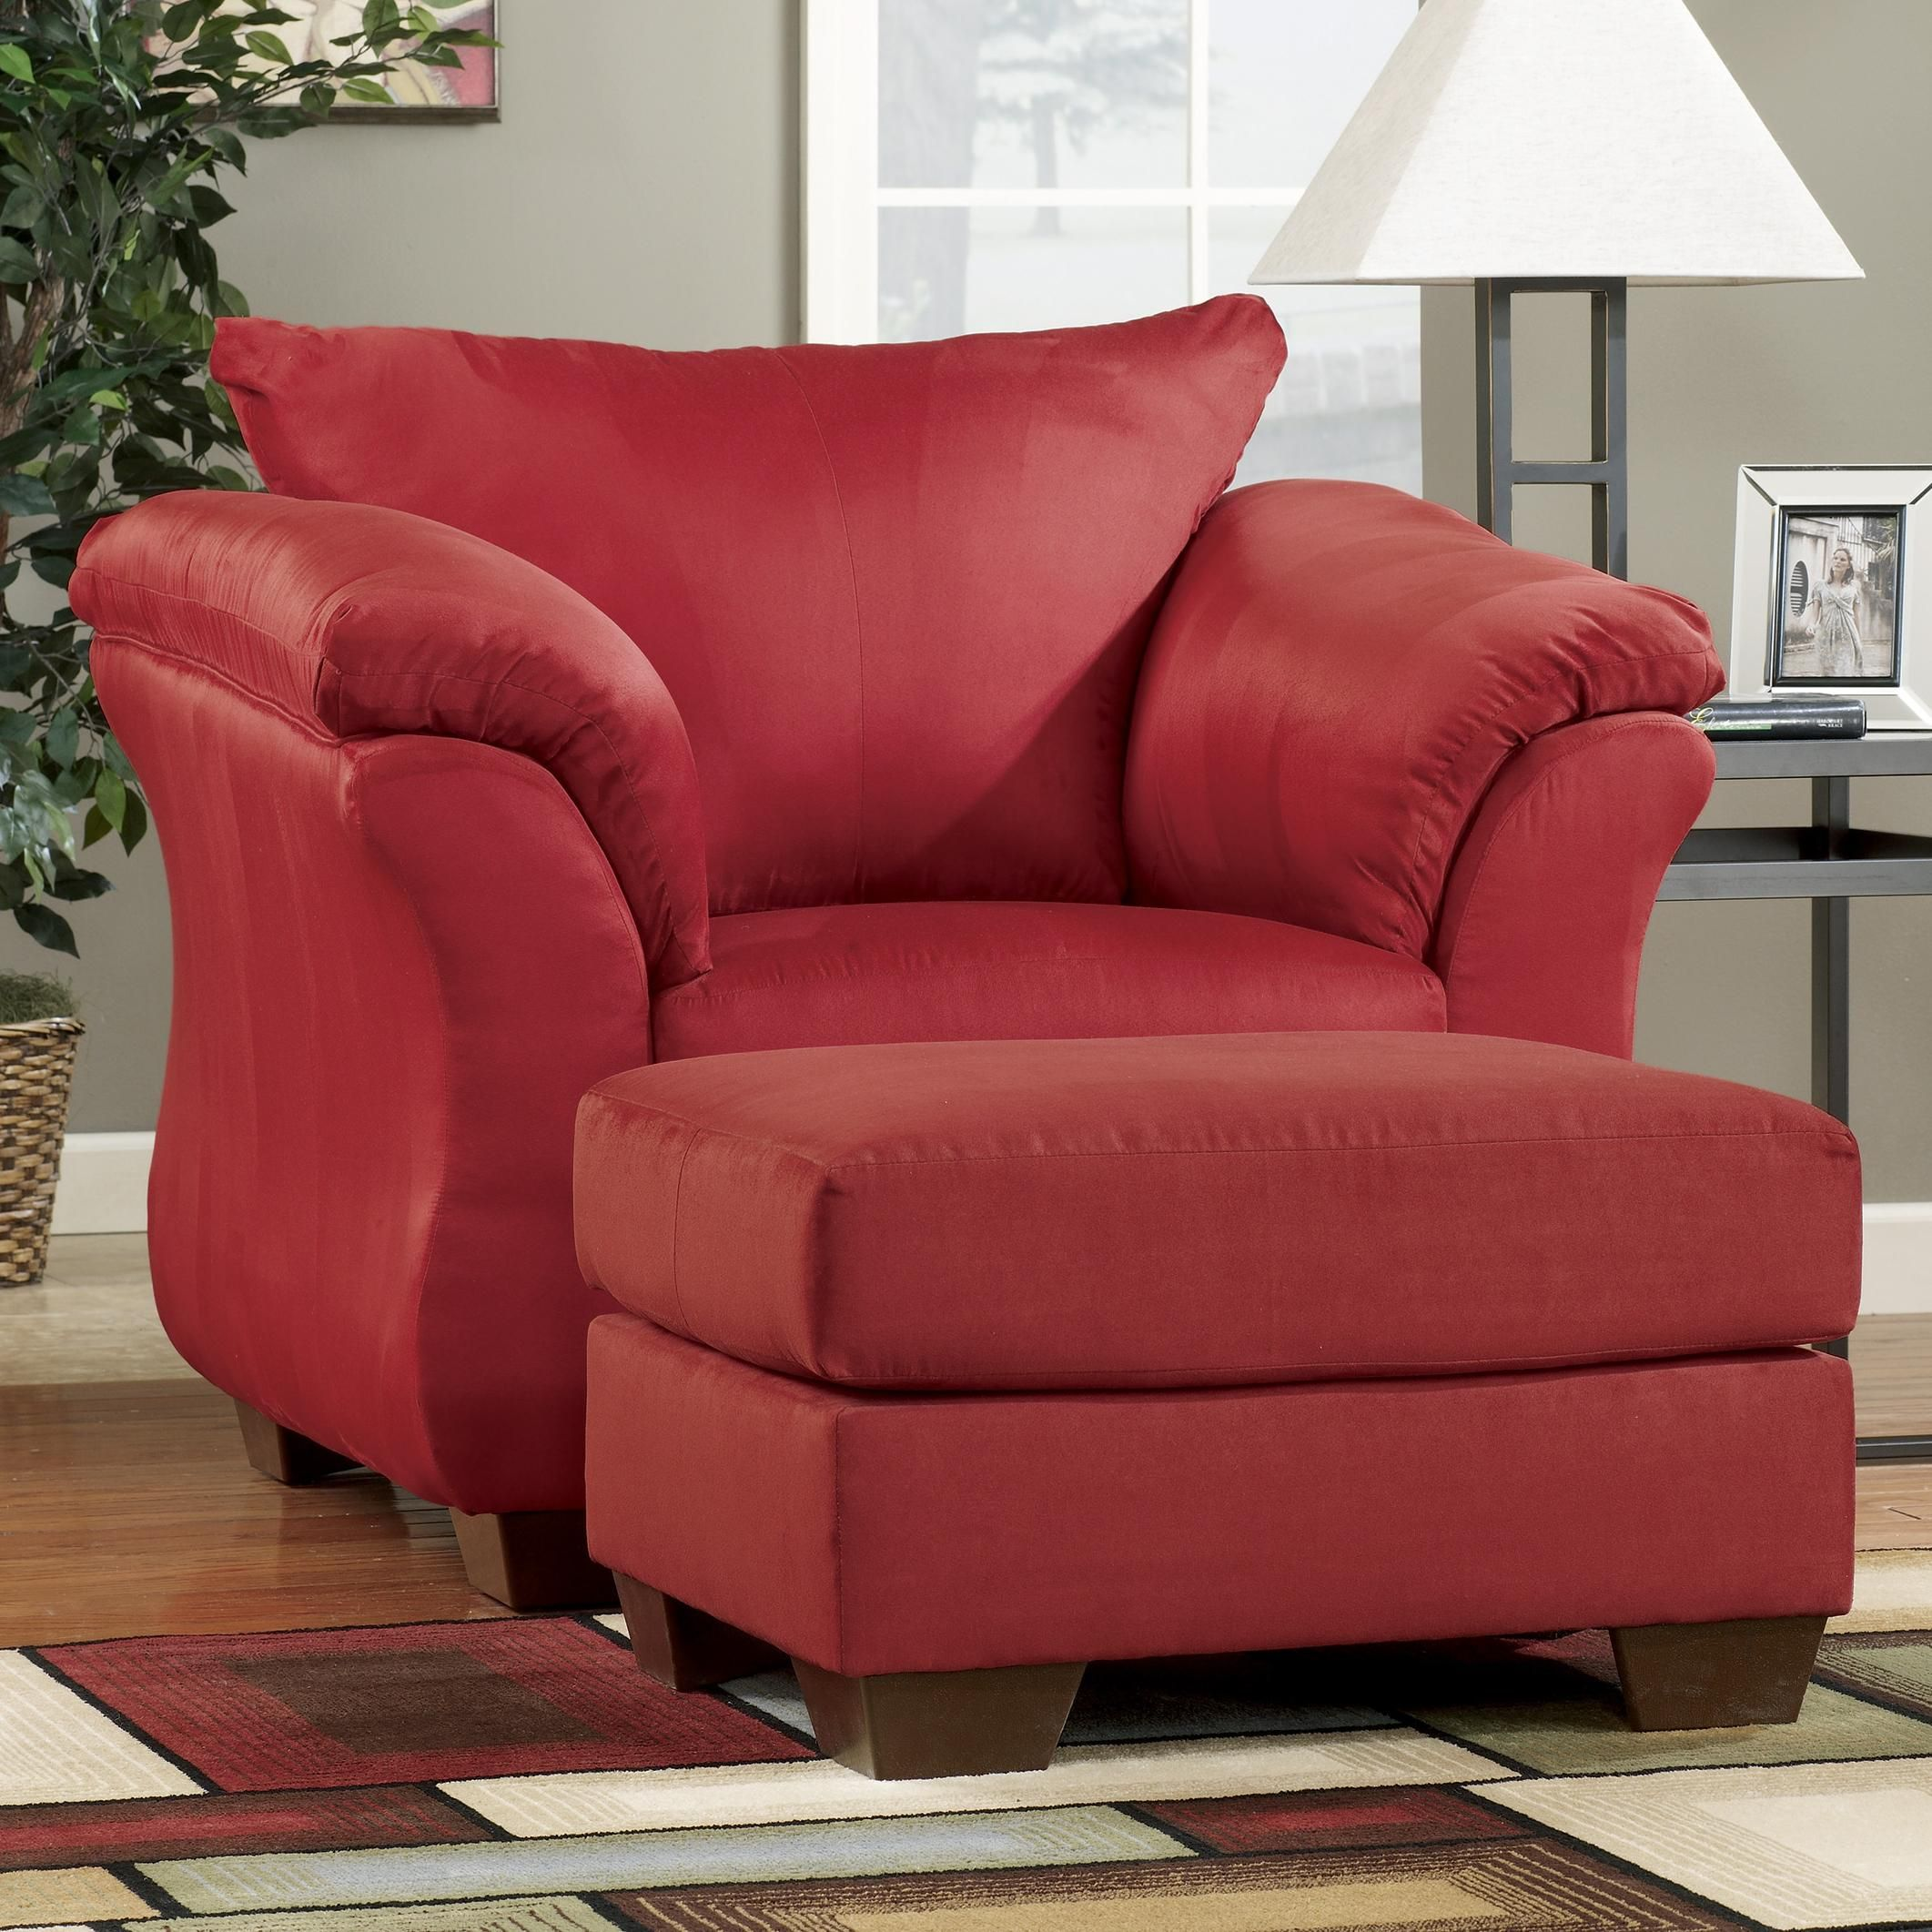 Darcy Salsa Upholstered Chair And Ottoman By Signature